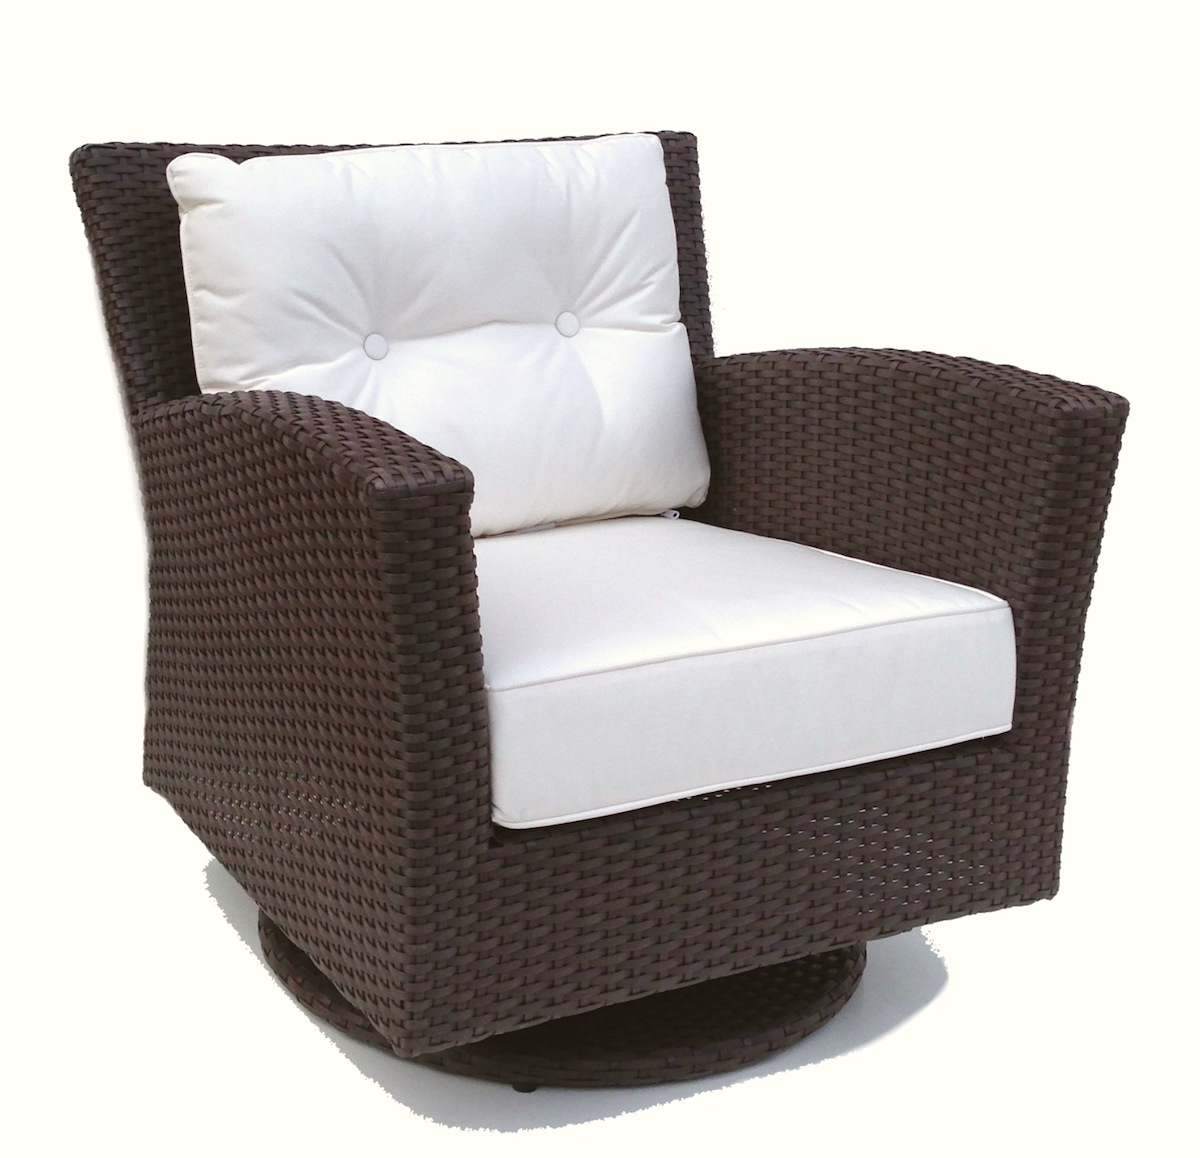 Swivel Rocker Patio Chairs Ideas — Wilson Home Ideas With Well Known Patio Rocking Swivel Chairs (View 5 of 15)